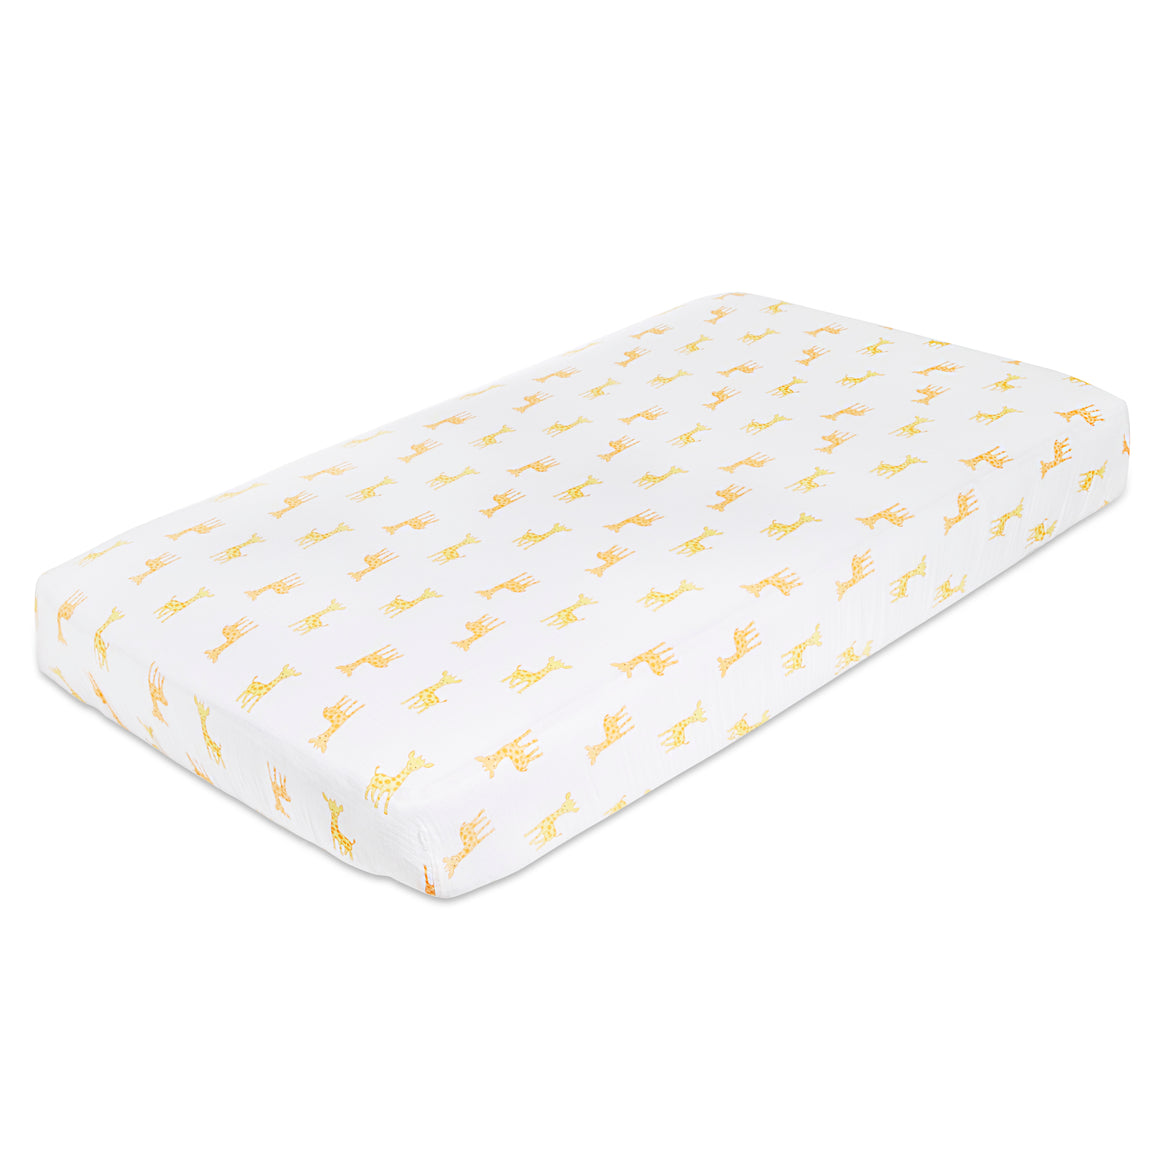 aden safari babes giraffe classic muslin fitted cot sheet single